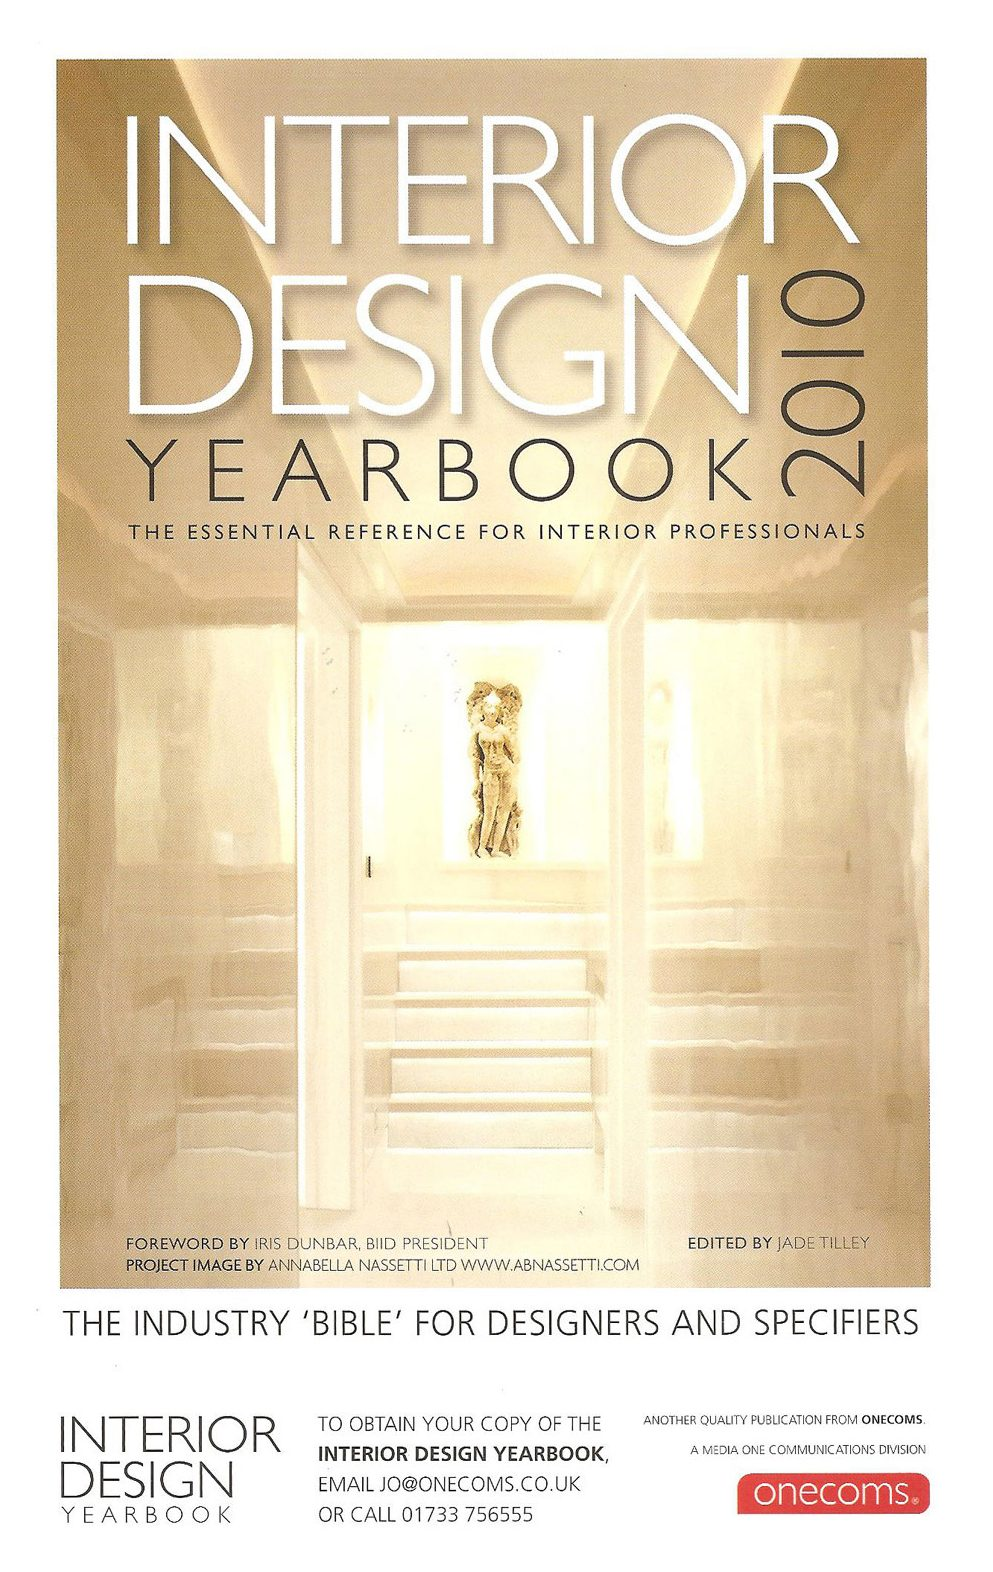 annabella nassetti on cover of interior design yearbook